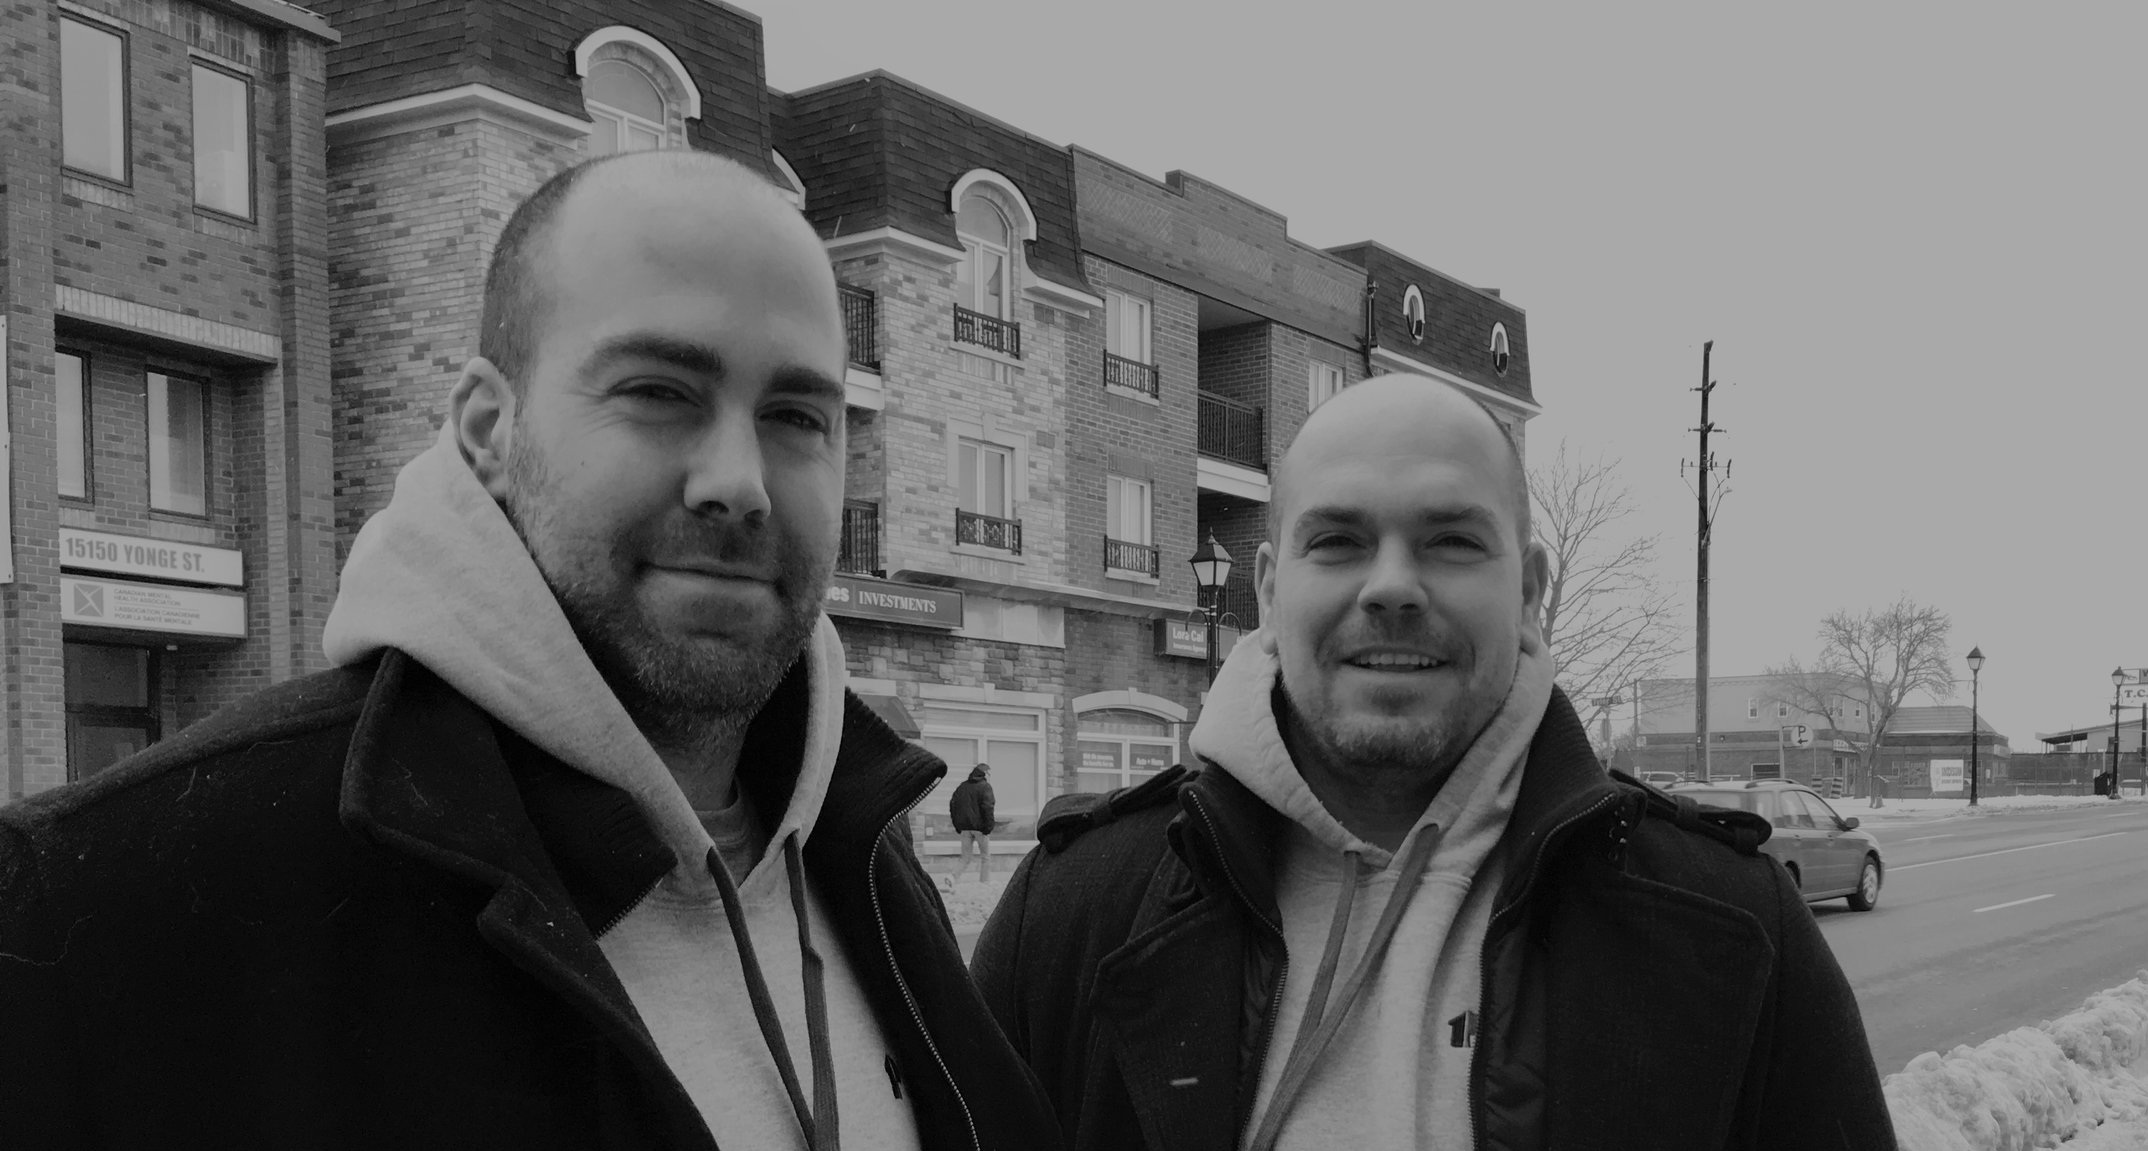 Brothers Sandro and Marco founded MSD Contracting in 2006.